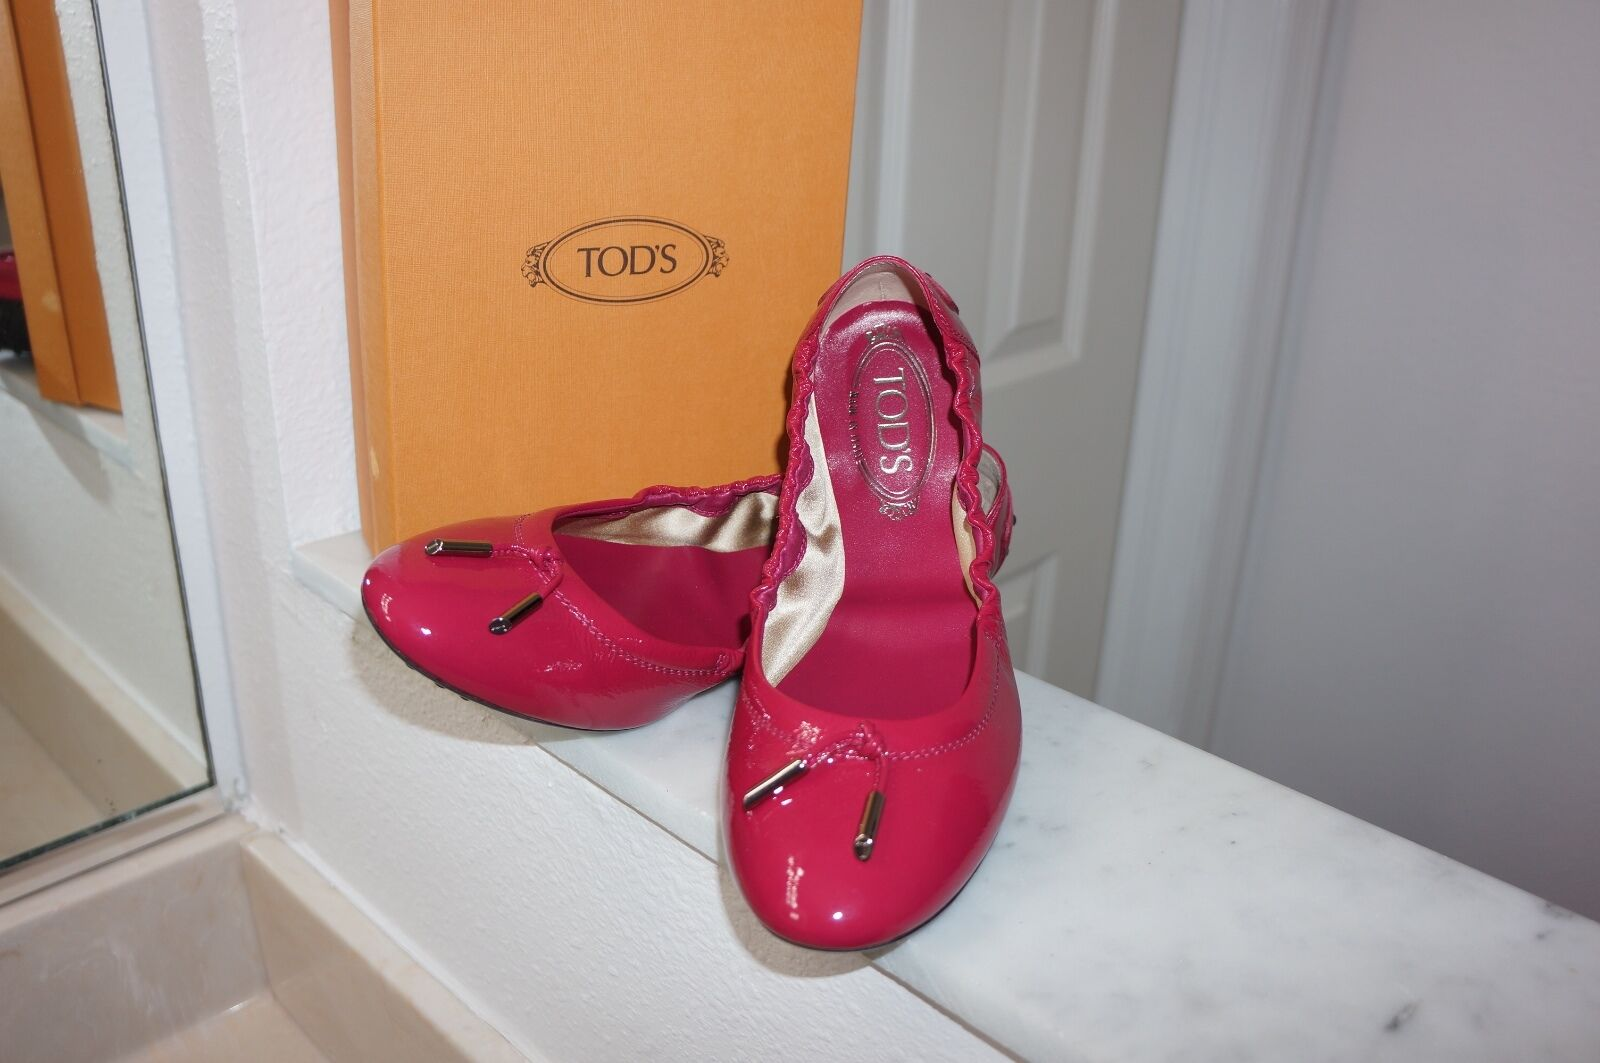 NEW Tod's Hot Pink Fuchsia  Patent Leather Ballerina Flats Sz 39.5/ US 9.5